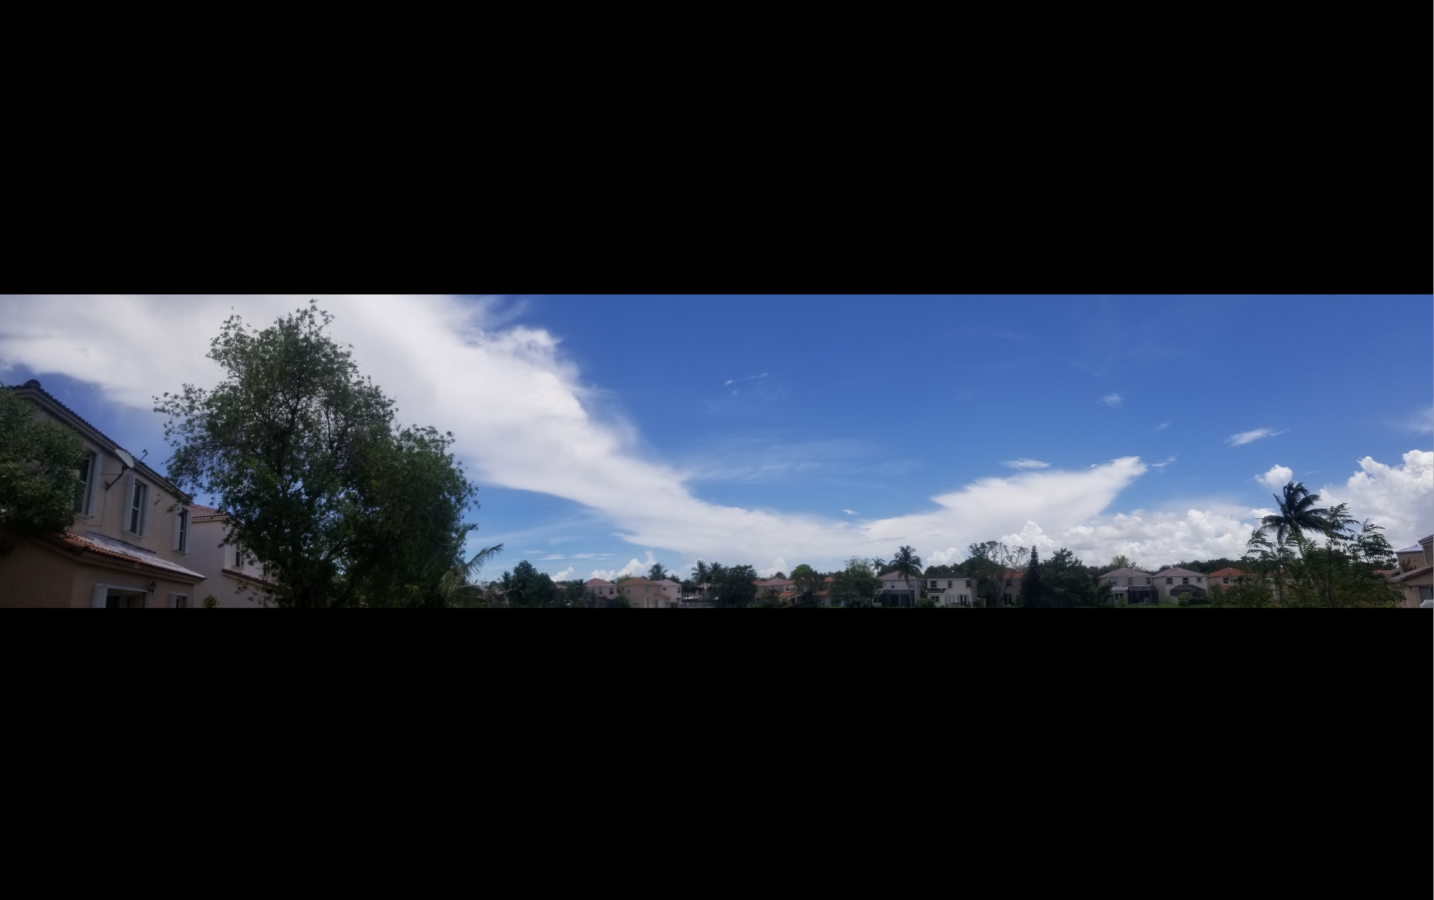 I'll be watching the clouds in my backyard! Not the first time I've seen a dragon cloud go by :) --Xuan